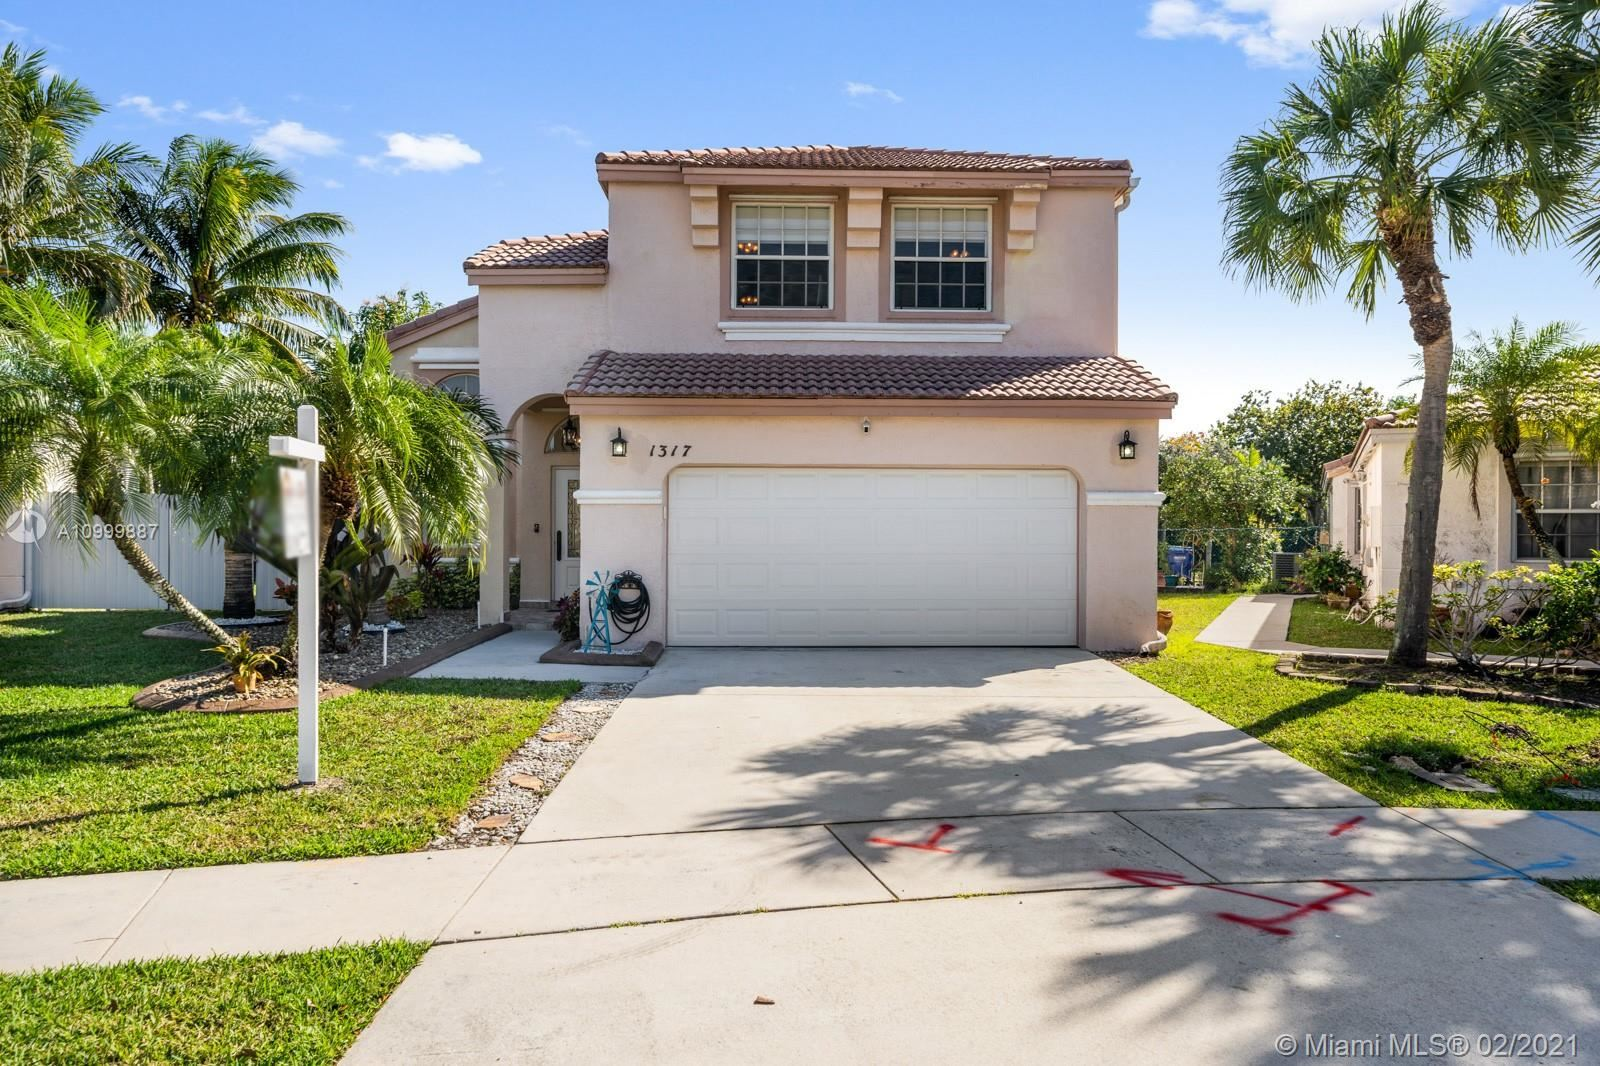 1317 NW 156th Ave, Pembroke Pines, FL 33028 - #: A10999887